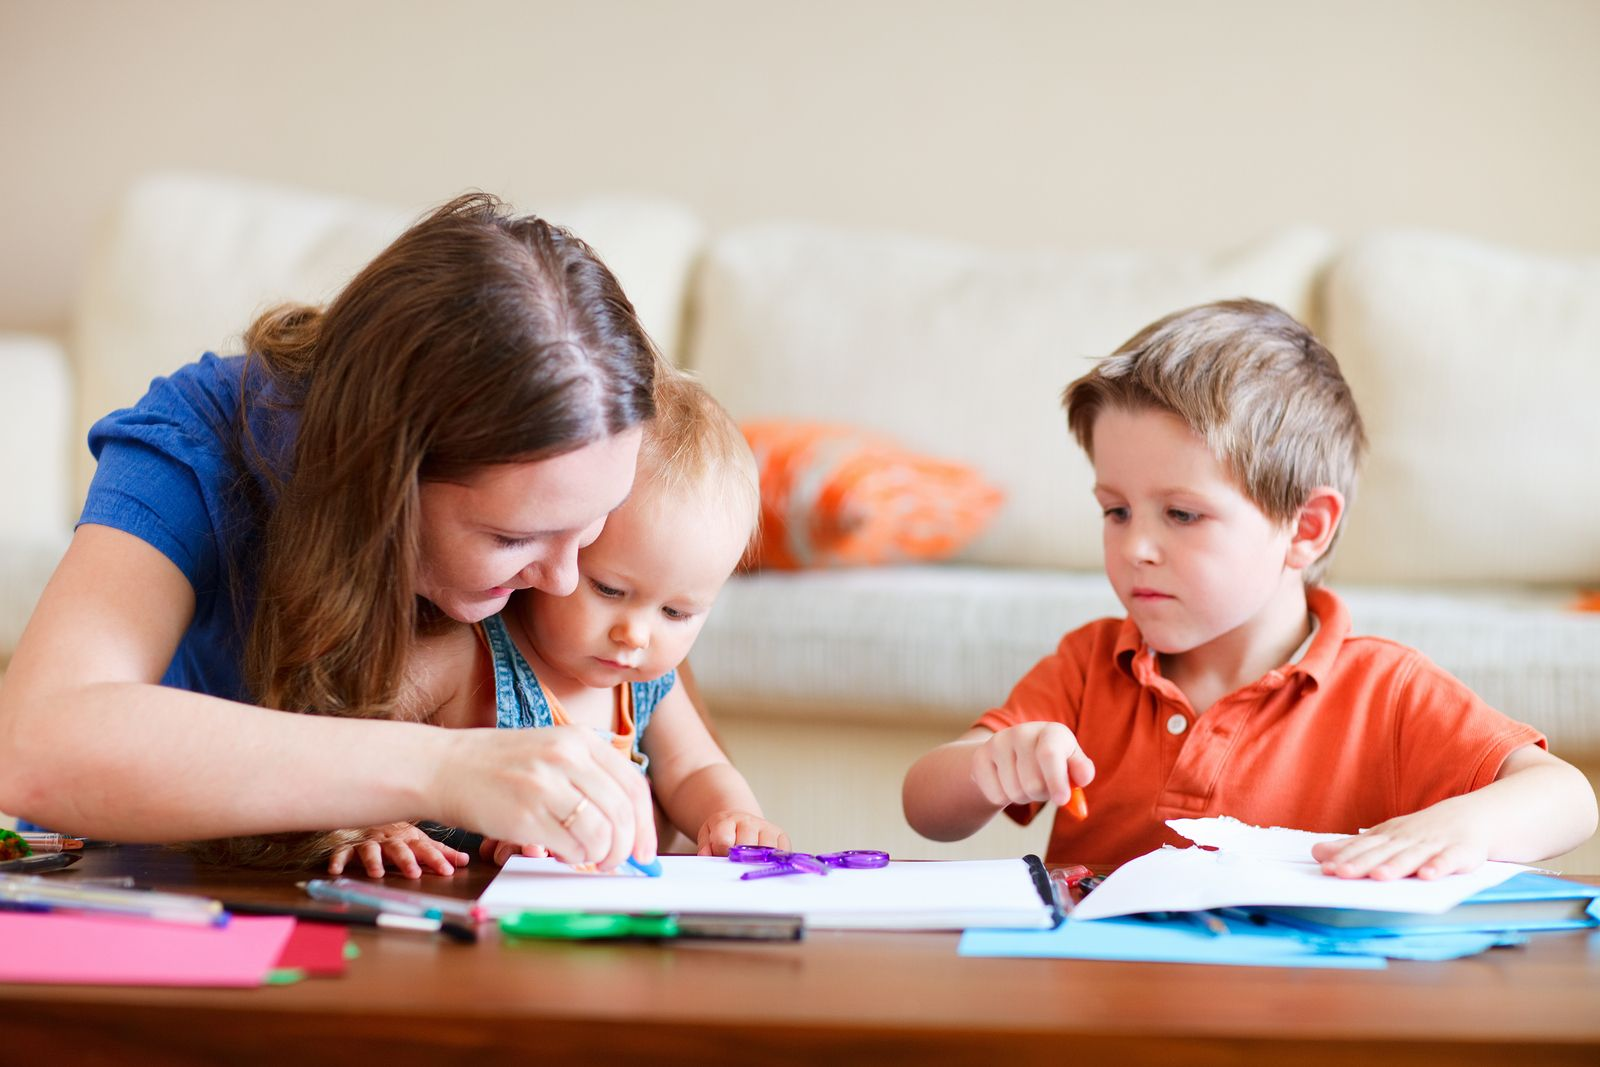 Kid-Friendly Home: 10 Ways To Get It Right